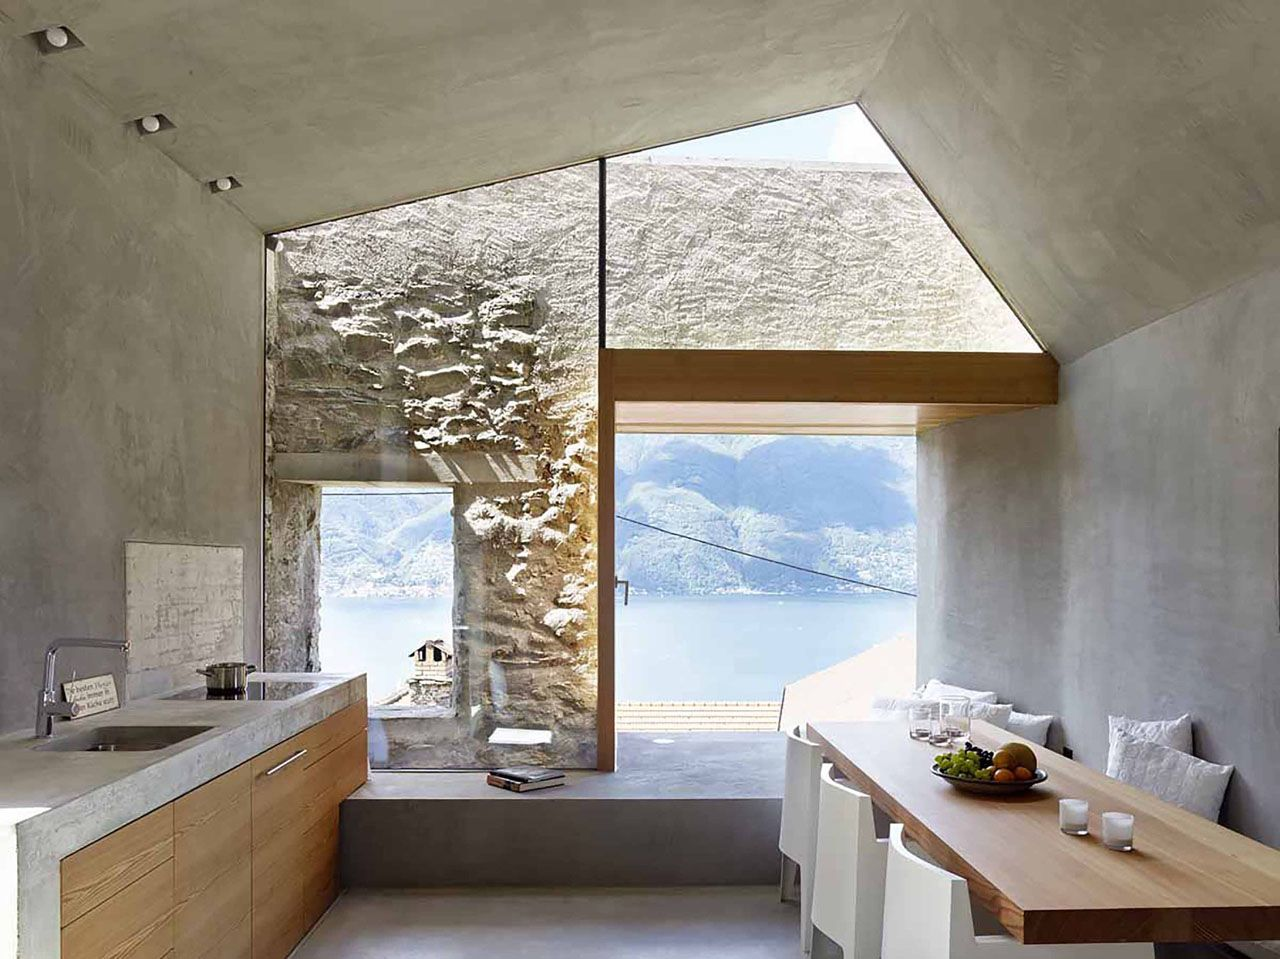 Modern renovation of an old stone house scaiano caviano for Modern architectural interior designs